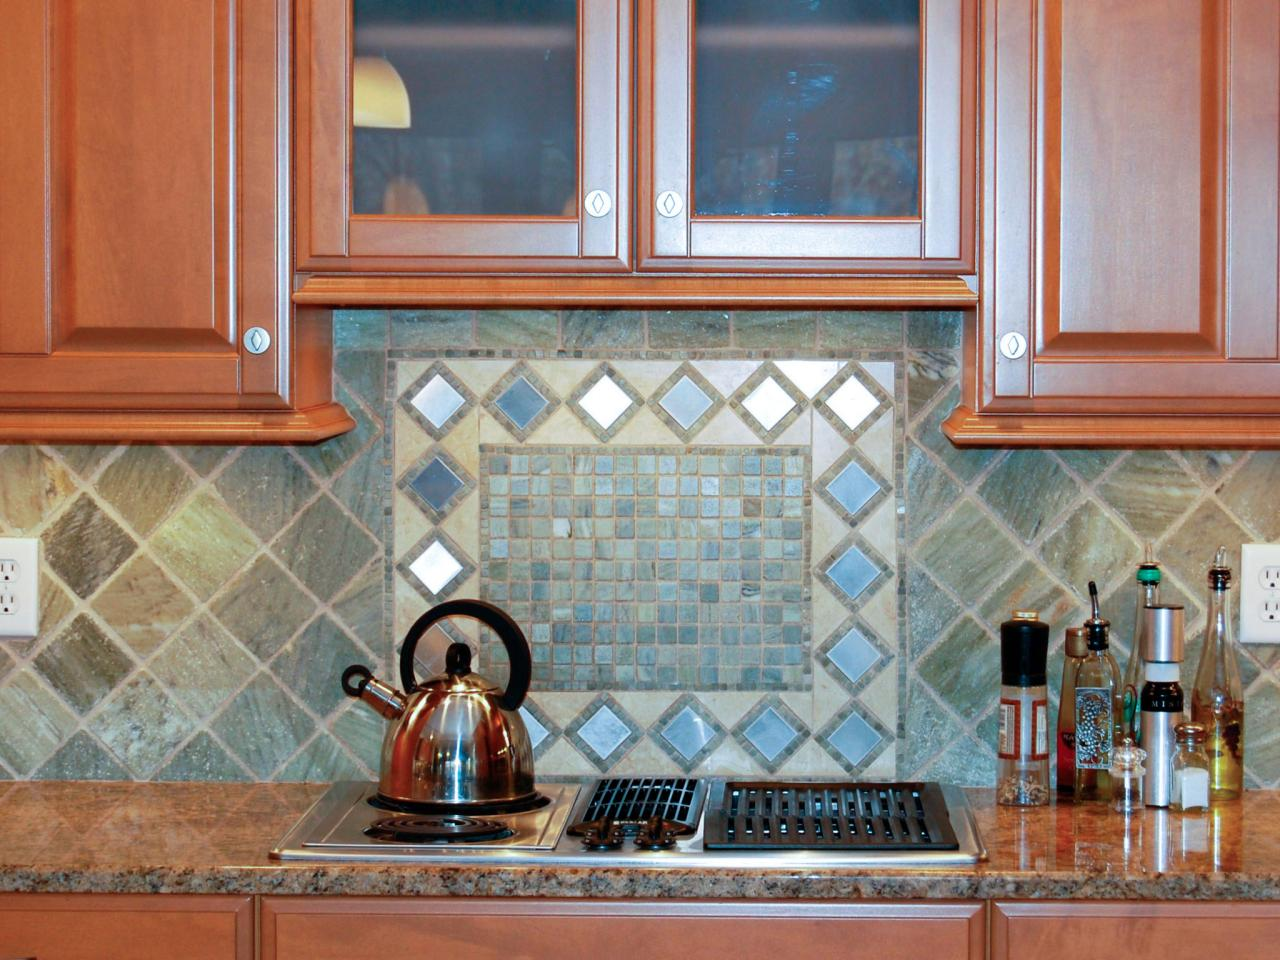 tumbled marble backsplashes pictures amp ideas from hgtv hgtv simple kitchen backsplash tile ideas tile designs